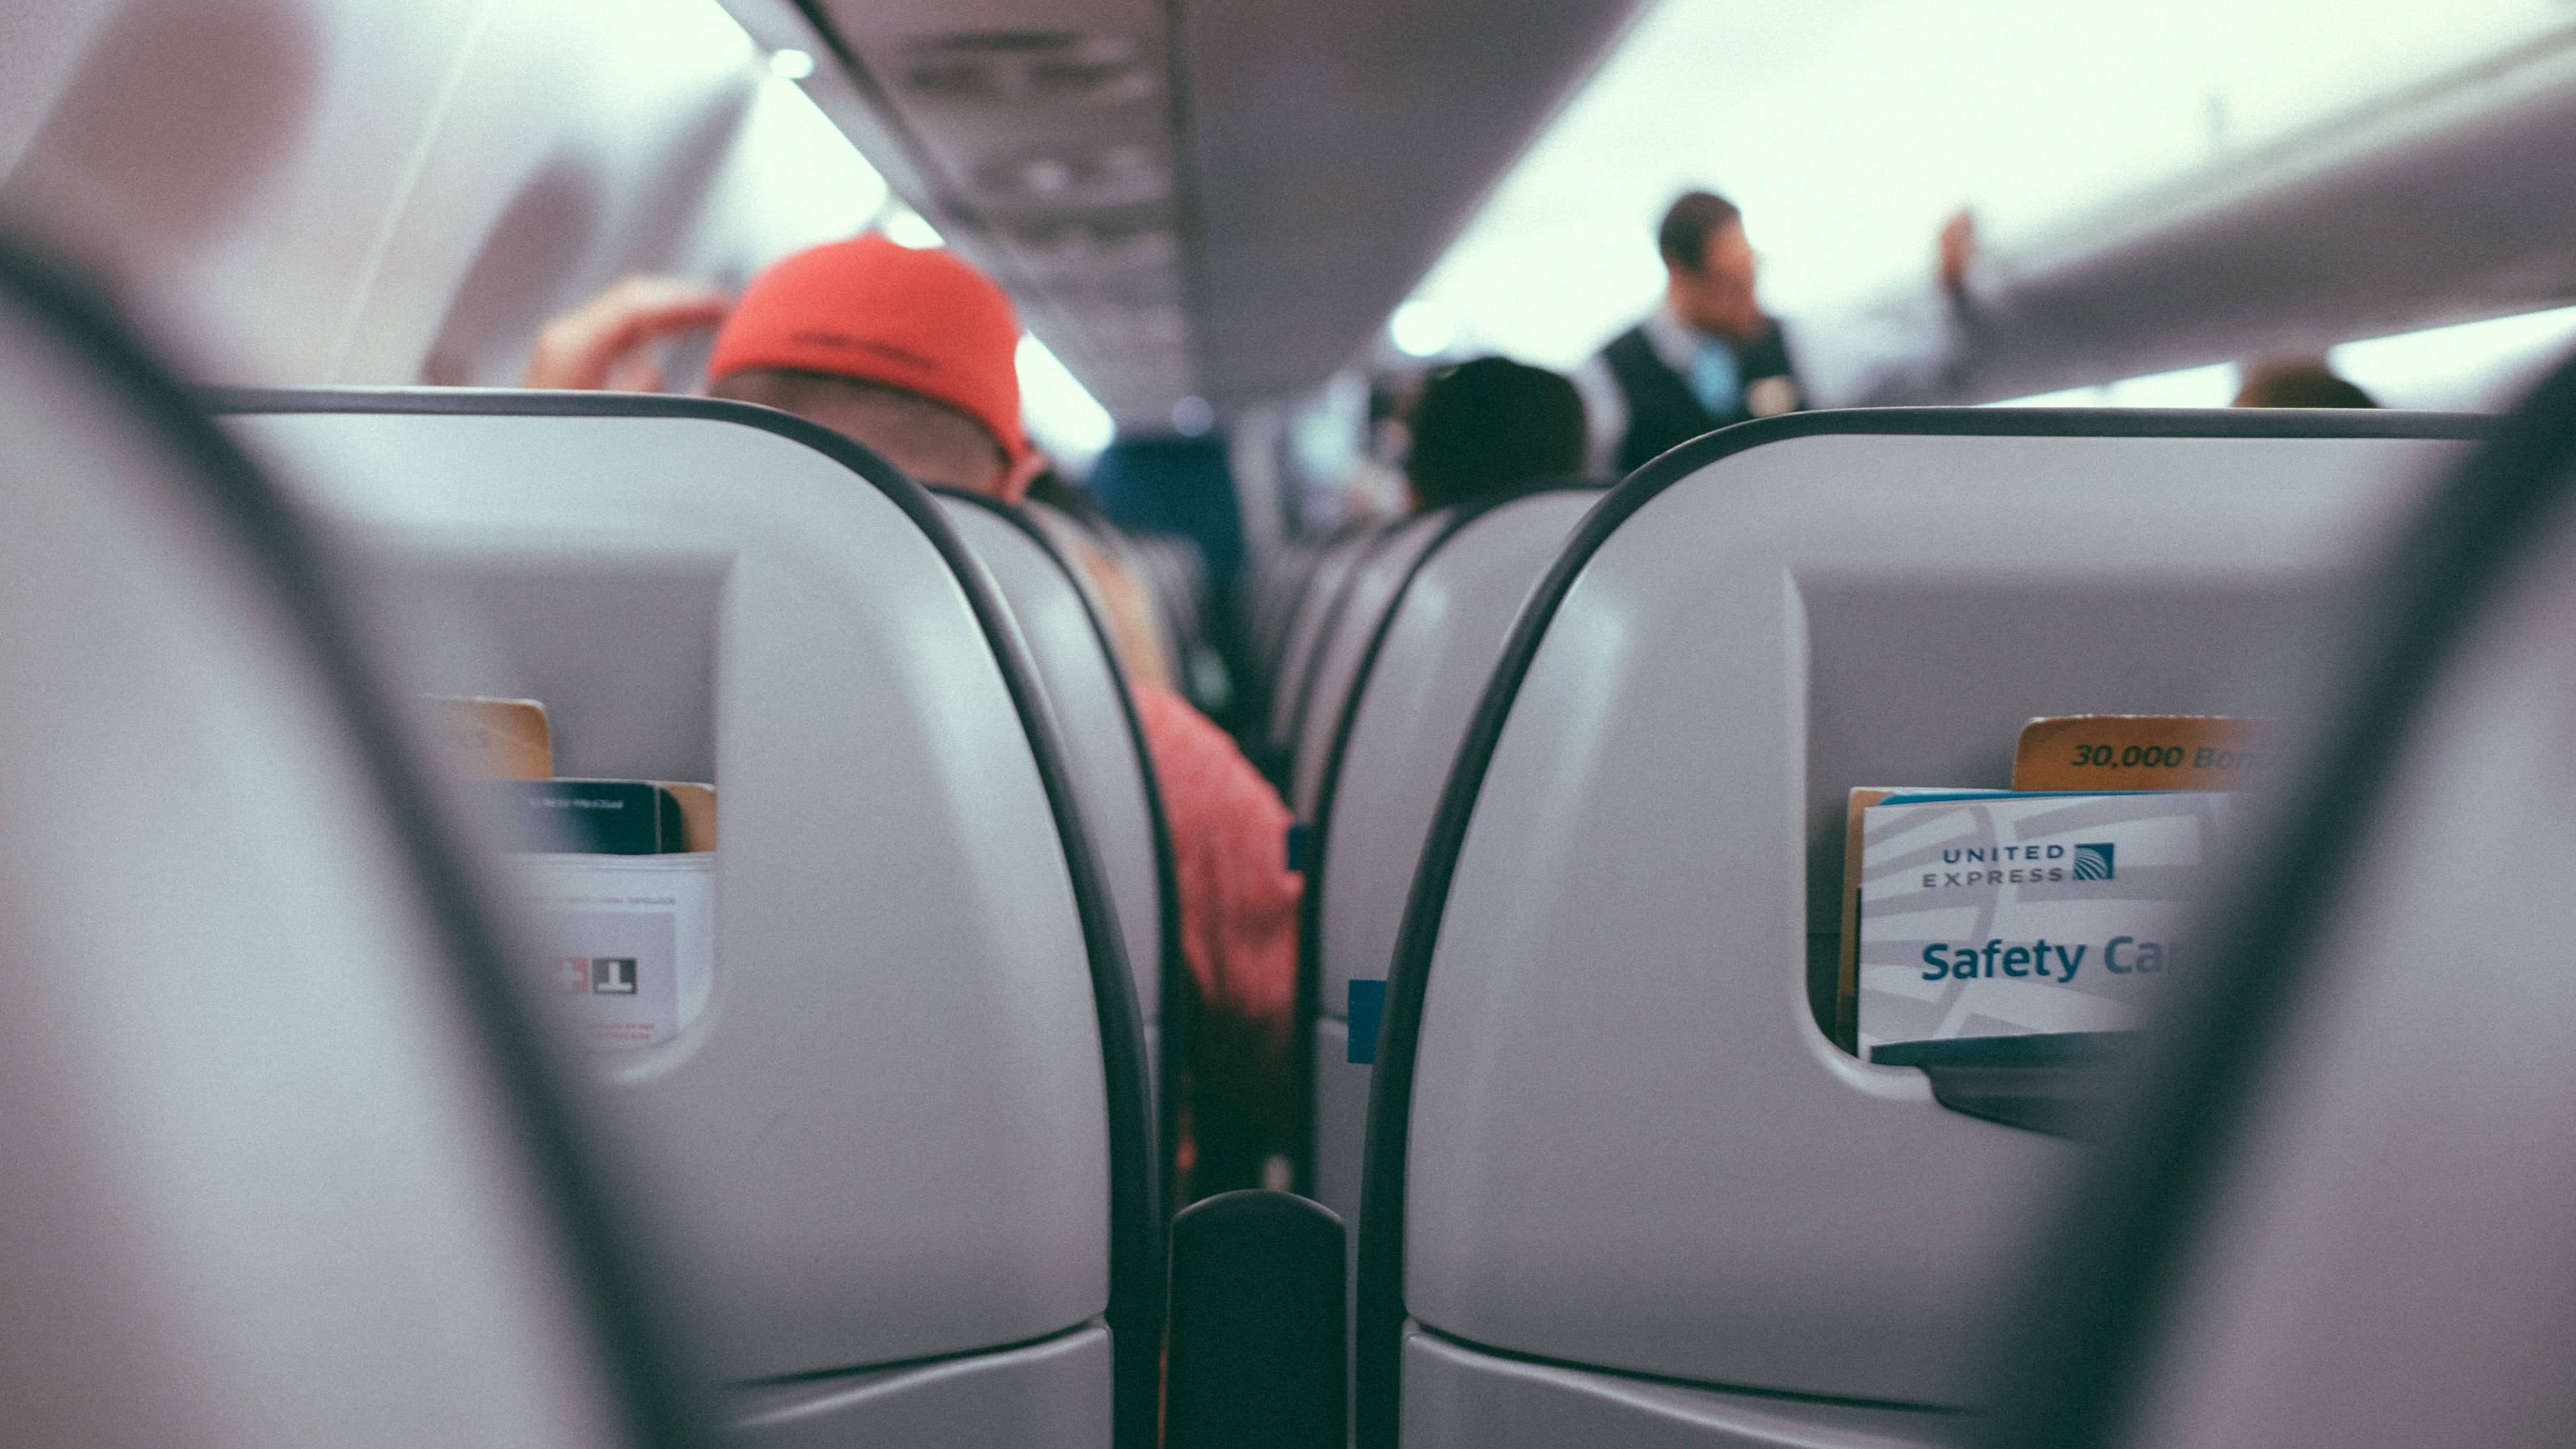 Before You Recline Your Aeroplane Seat, Check The Person Behind You